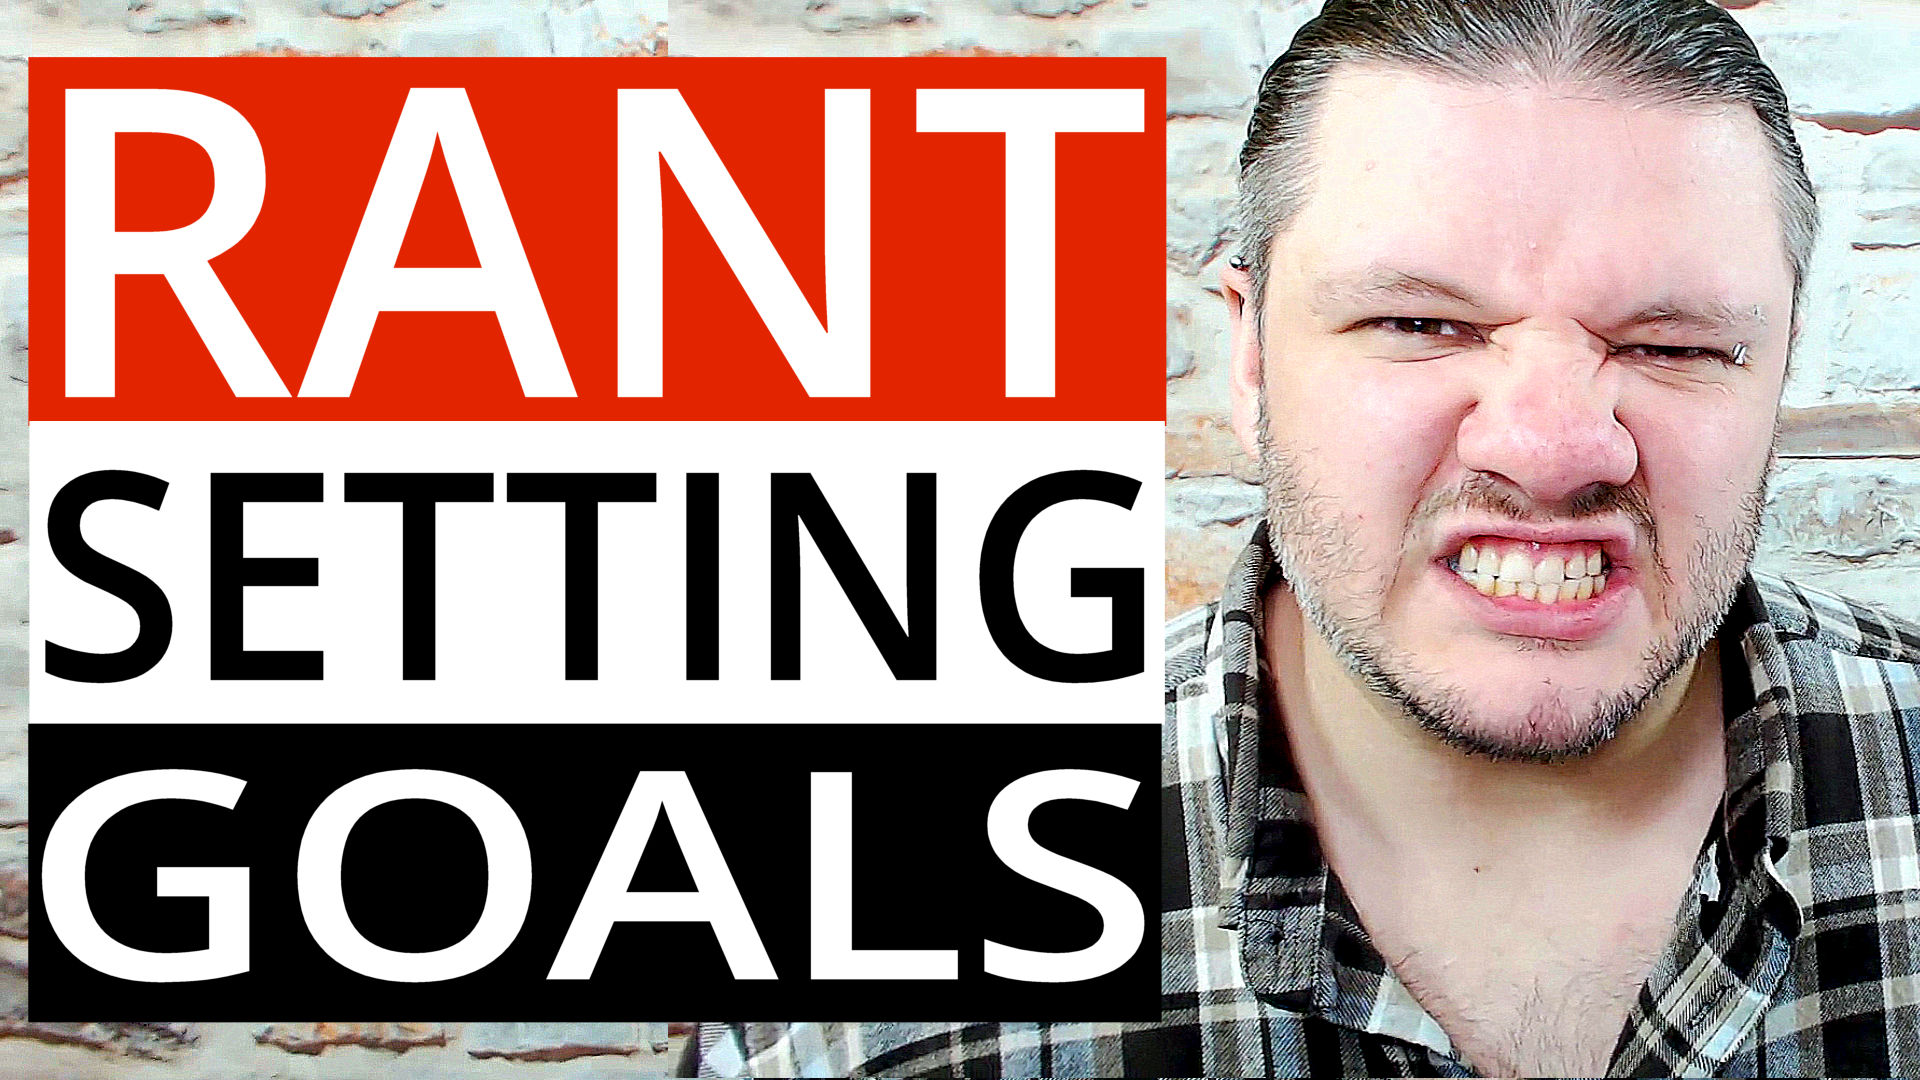 alan spicer,alanspicer,asyt,youtube goals 2018,grow your youtube channel,how to grow your youtube channel fast in 2018,grow your youtube channel fast 2018,youtube tips for small channels,grow your youtube channel fast,Setting Yourself Goals,goal setting,goals,success,setting goals for yourself,importance of setting yourself goals,setting yourself up for success,success on youtube,success on youtube still means a life of poverty,setting goals,goal setting,goals,success,setting goals for 2018,setting smart goals,setting goals for students,how to make your youtube channel grow faster,get more subscribers